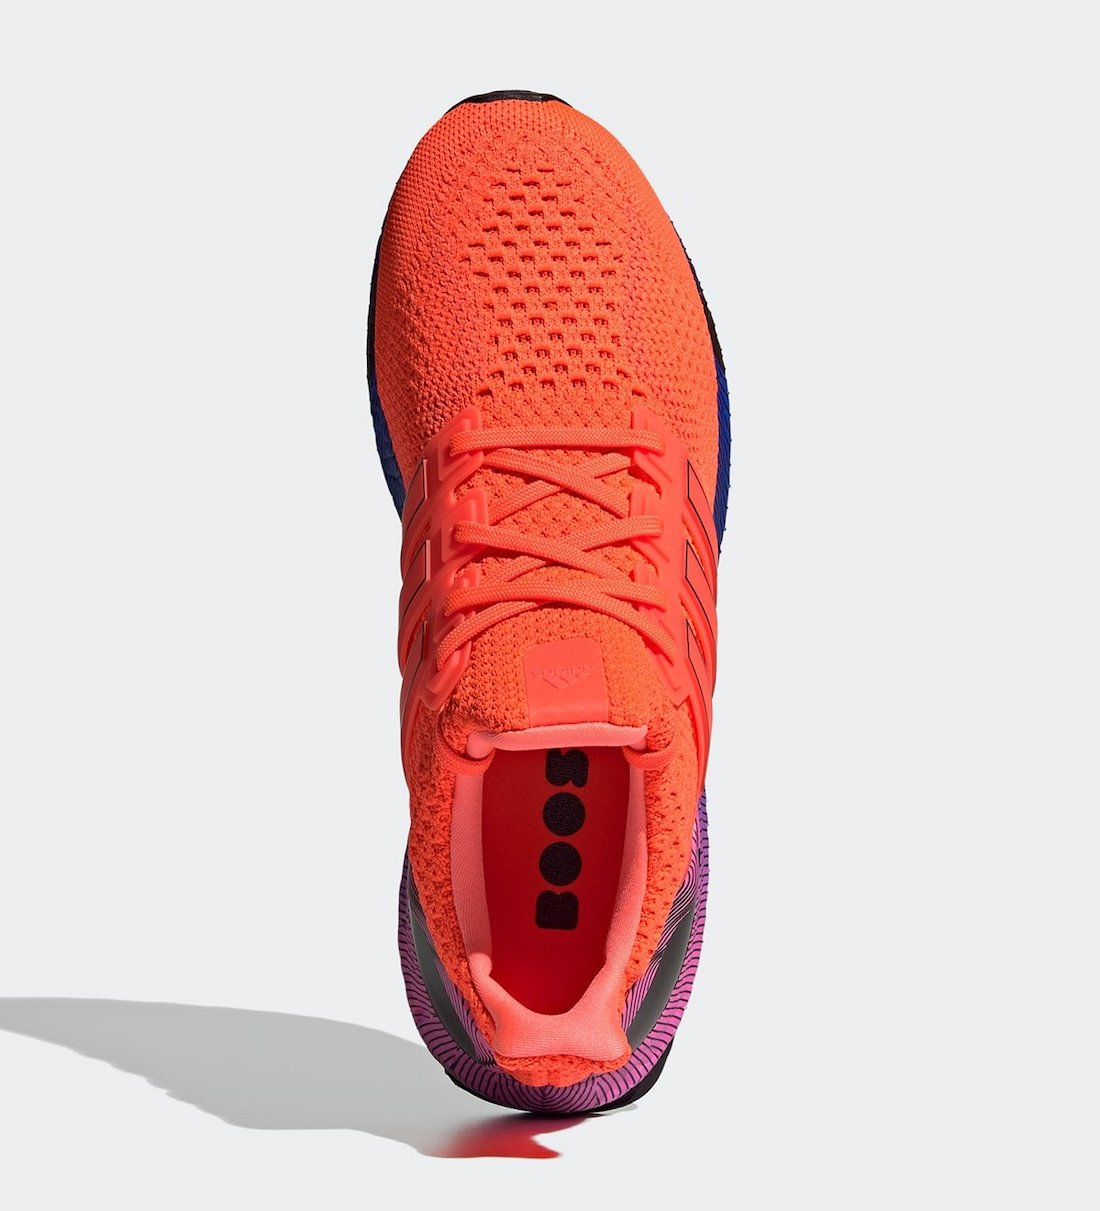 adidas Ultra Boost DNA Topography GW4927 Release Date Info